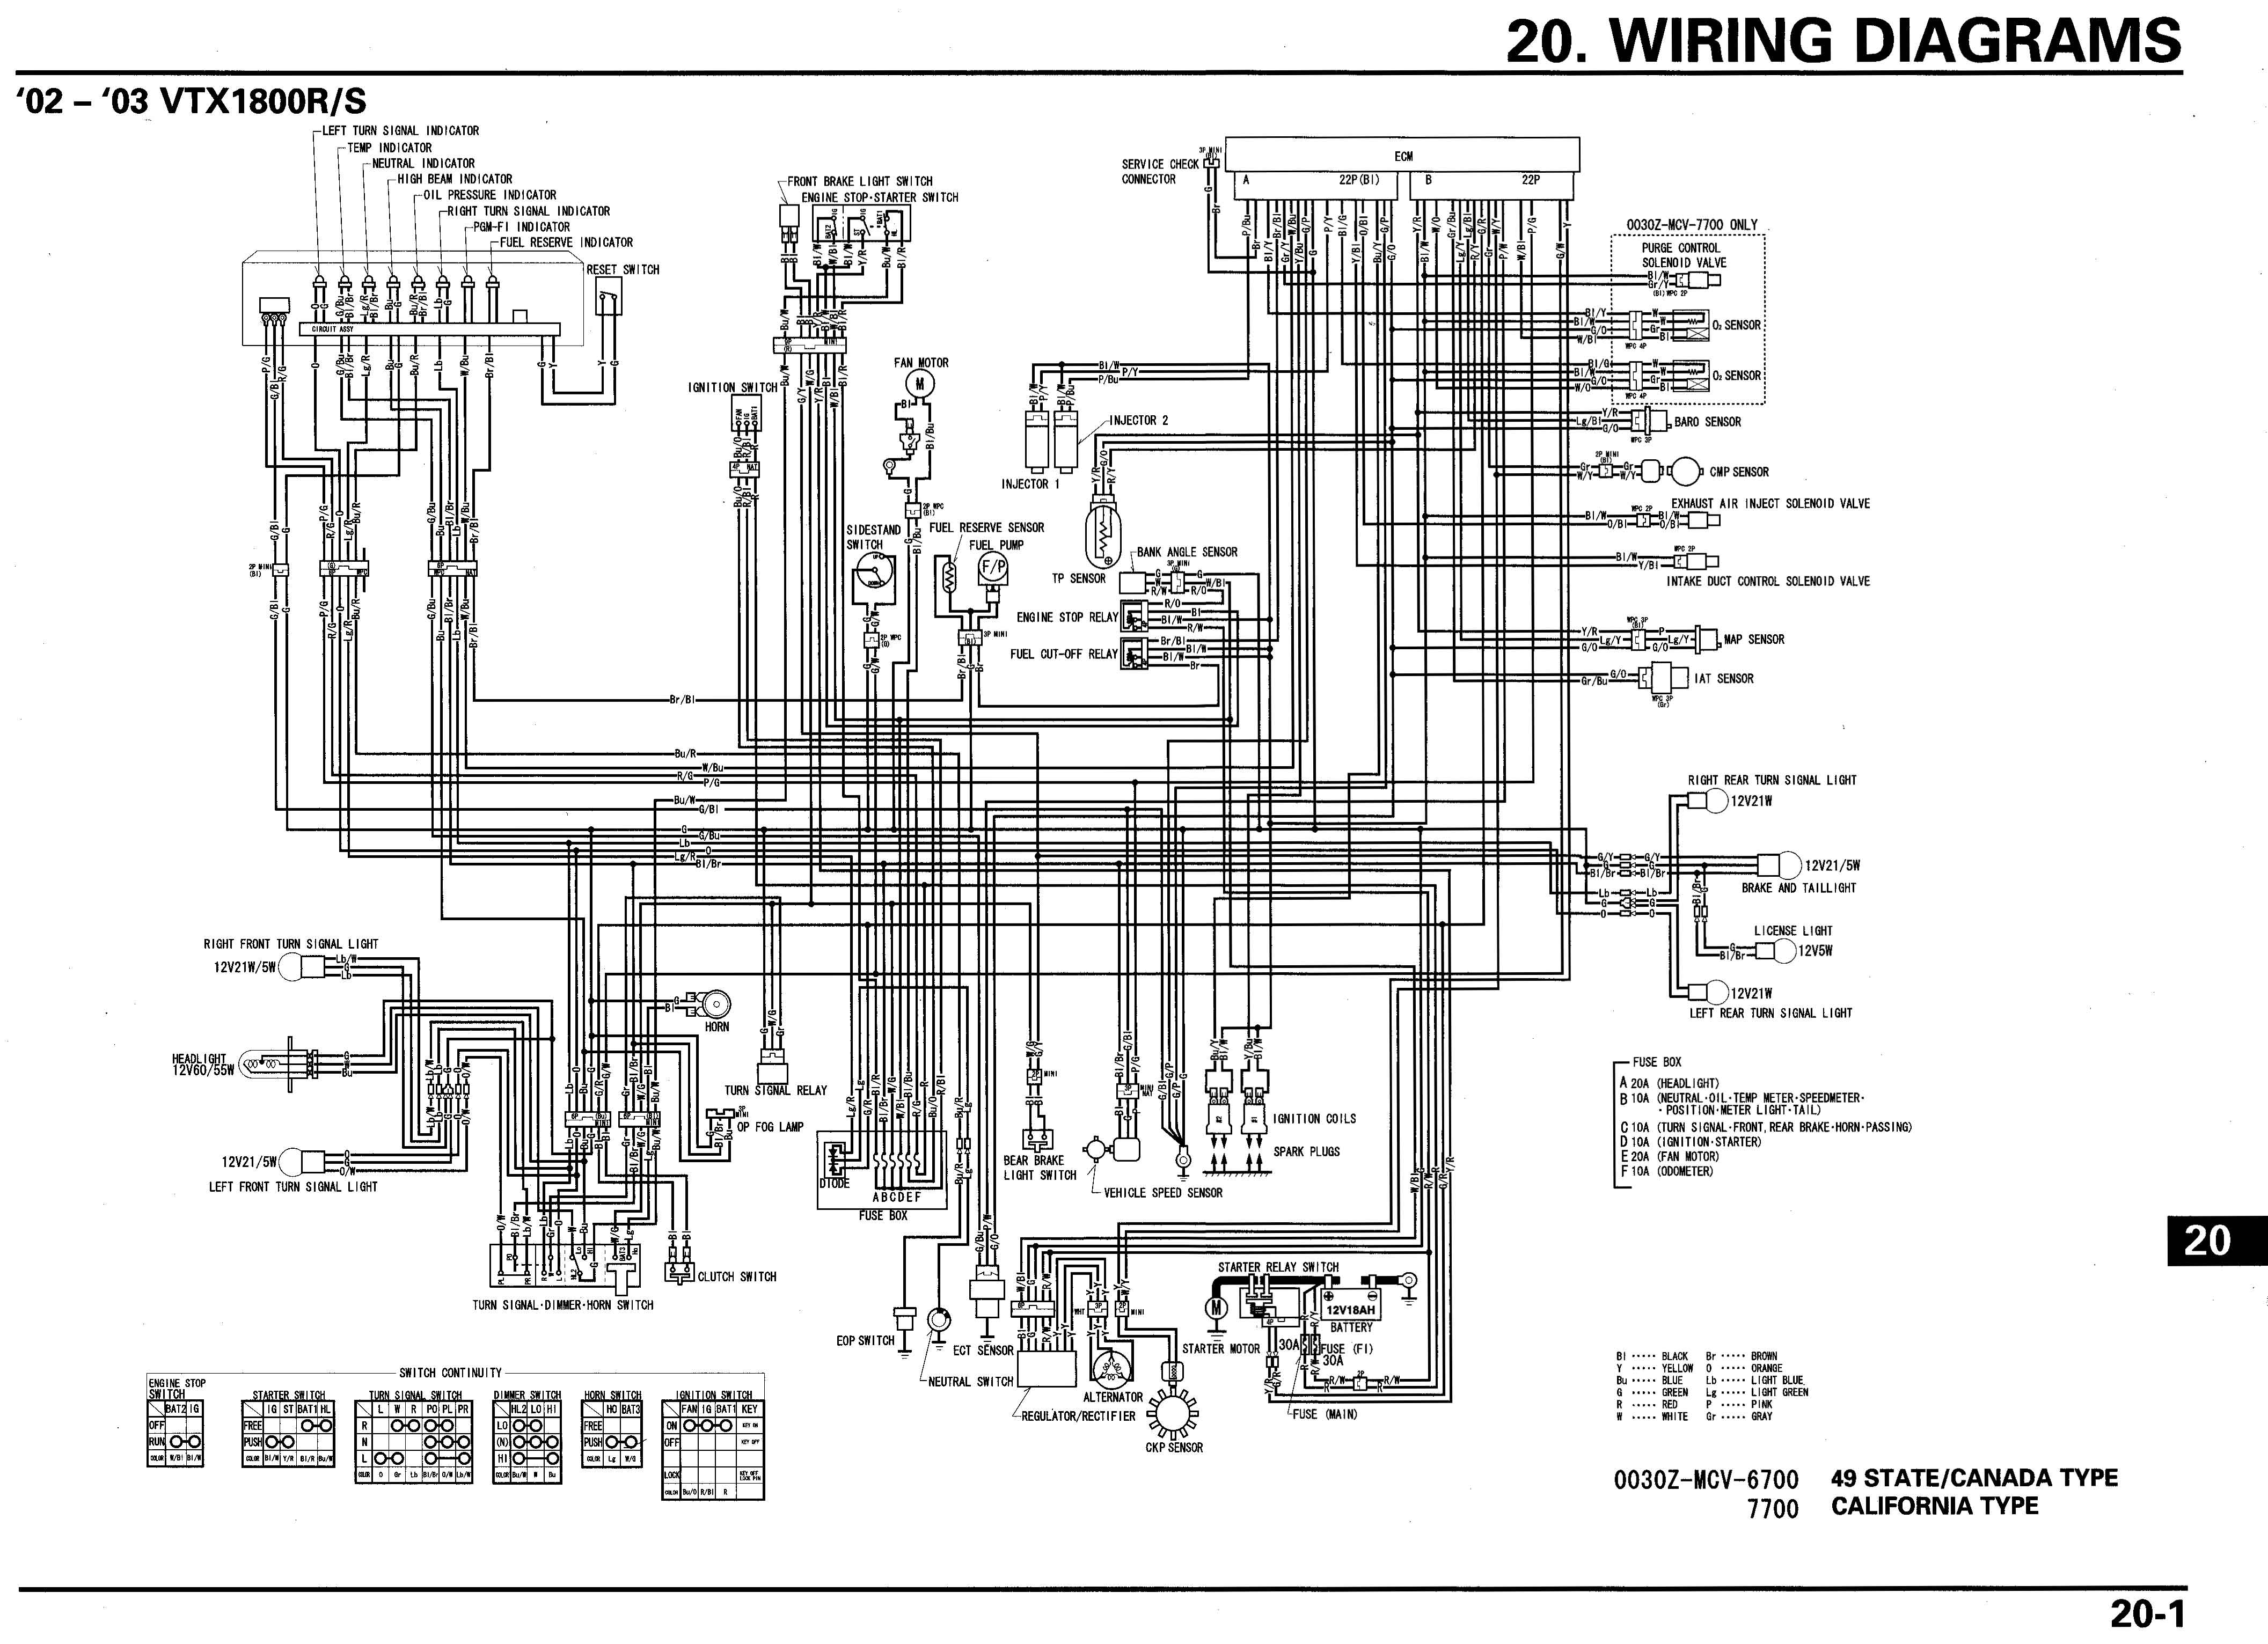 2007 Honda Element Wiring Diagram Opinions About 2008 Fuse Box Vtx 1800 Schematics Rh Mychampagnedaze Com 2003 Engine